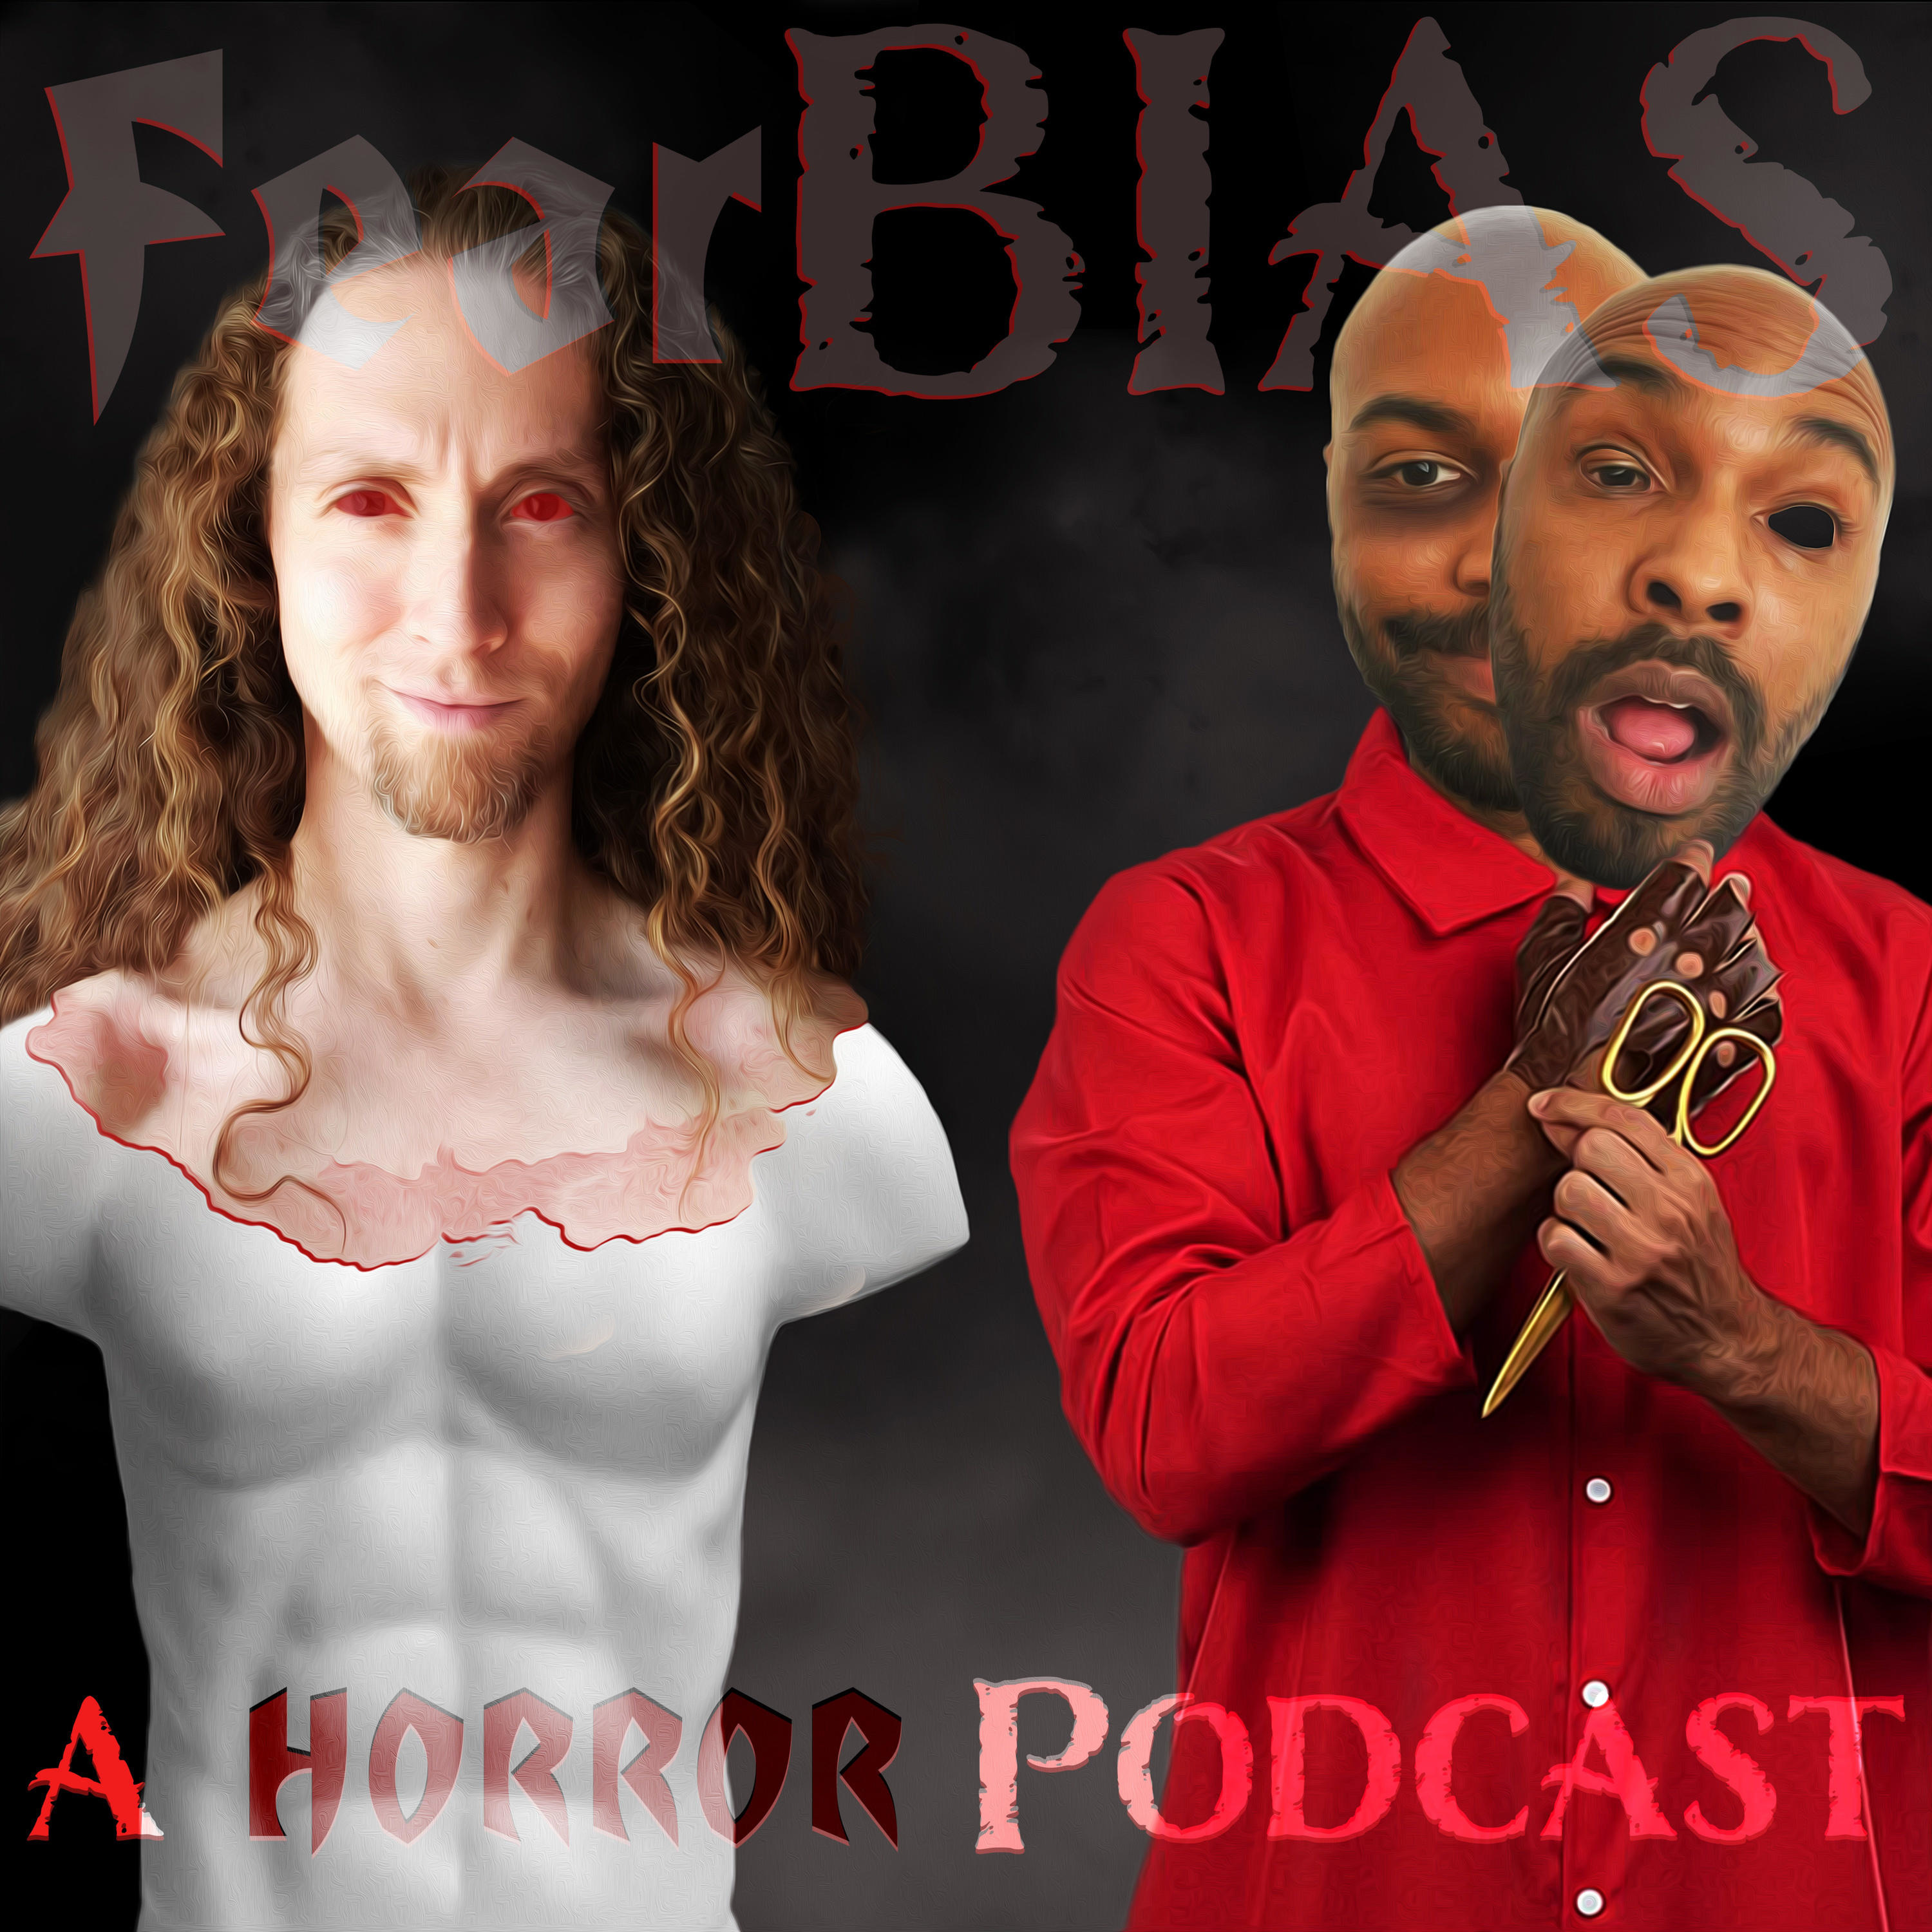 FearBIAS: A Horror Podcast